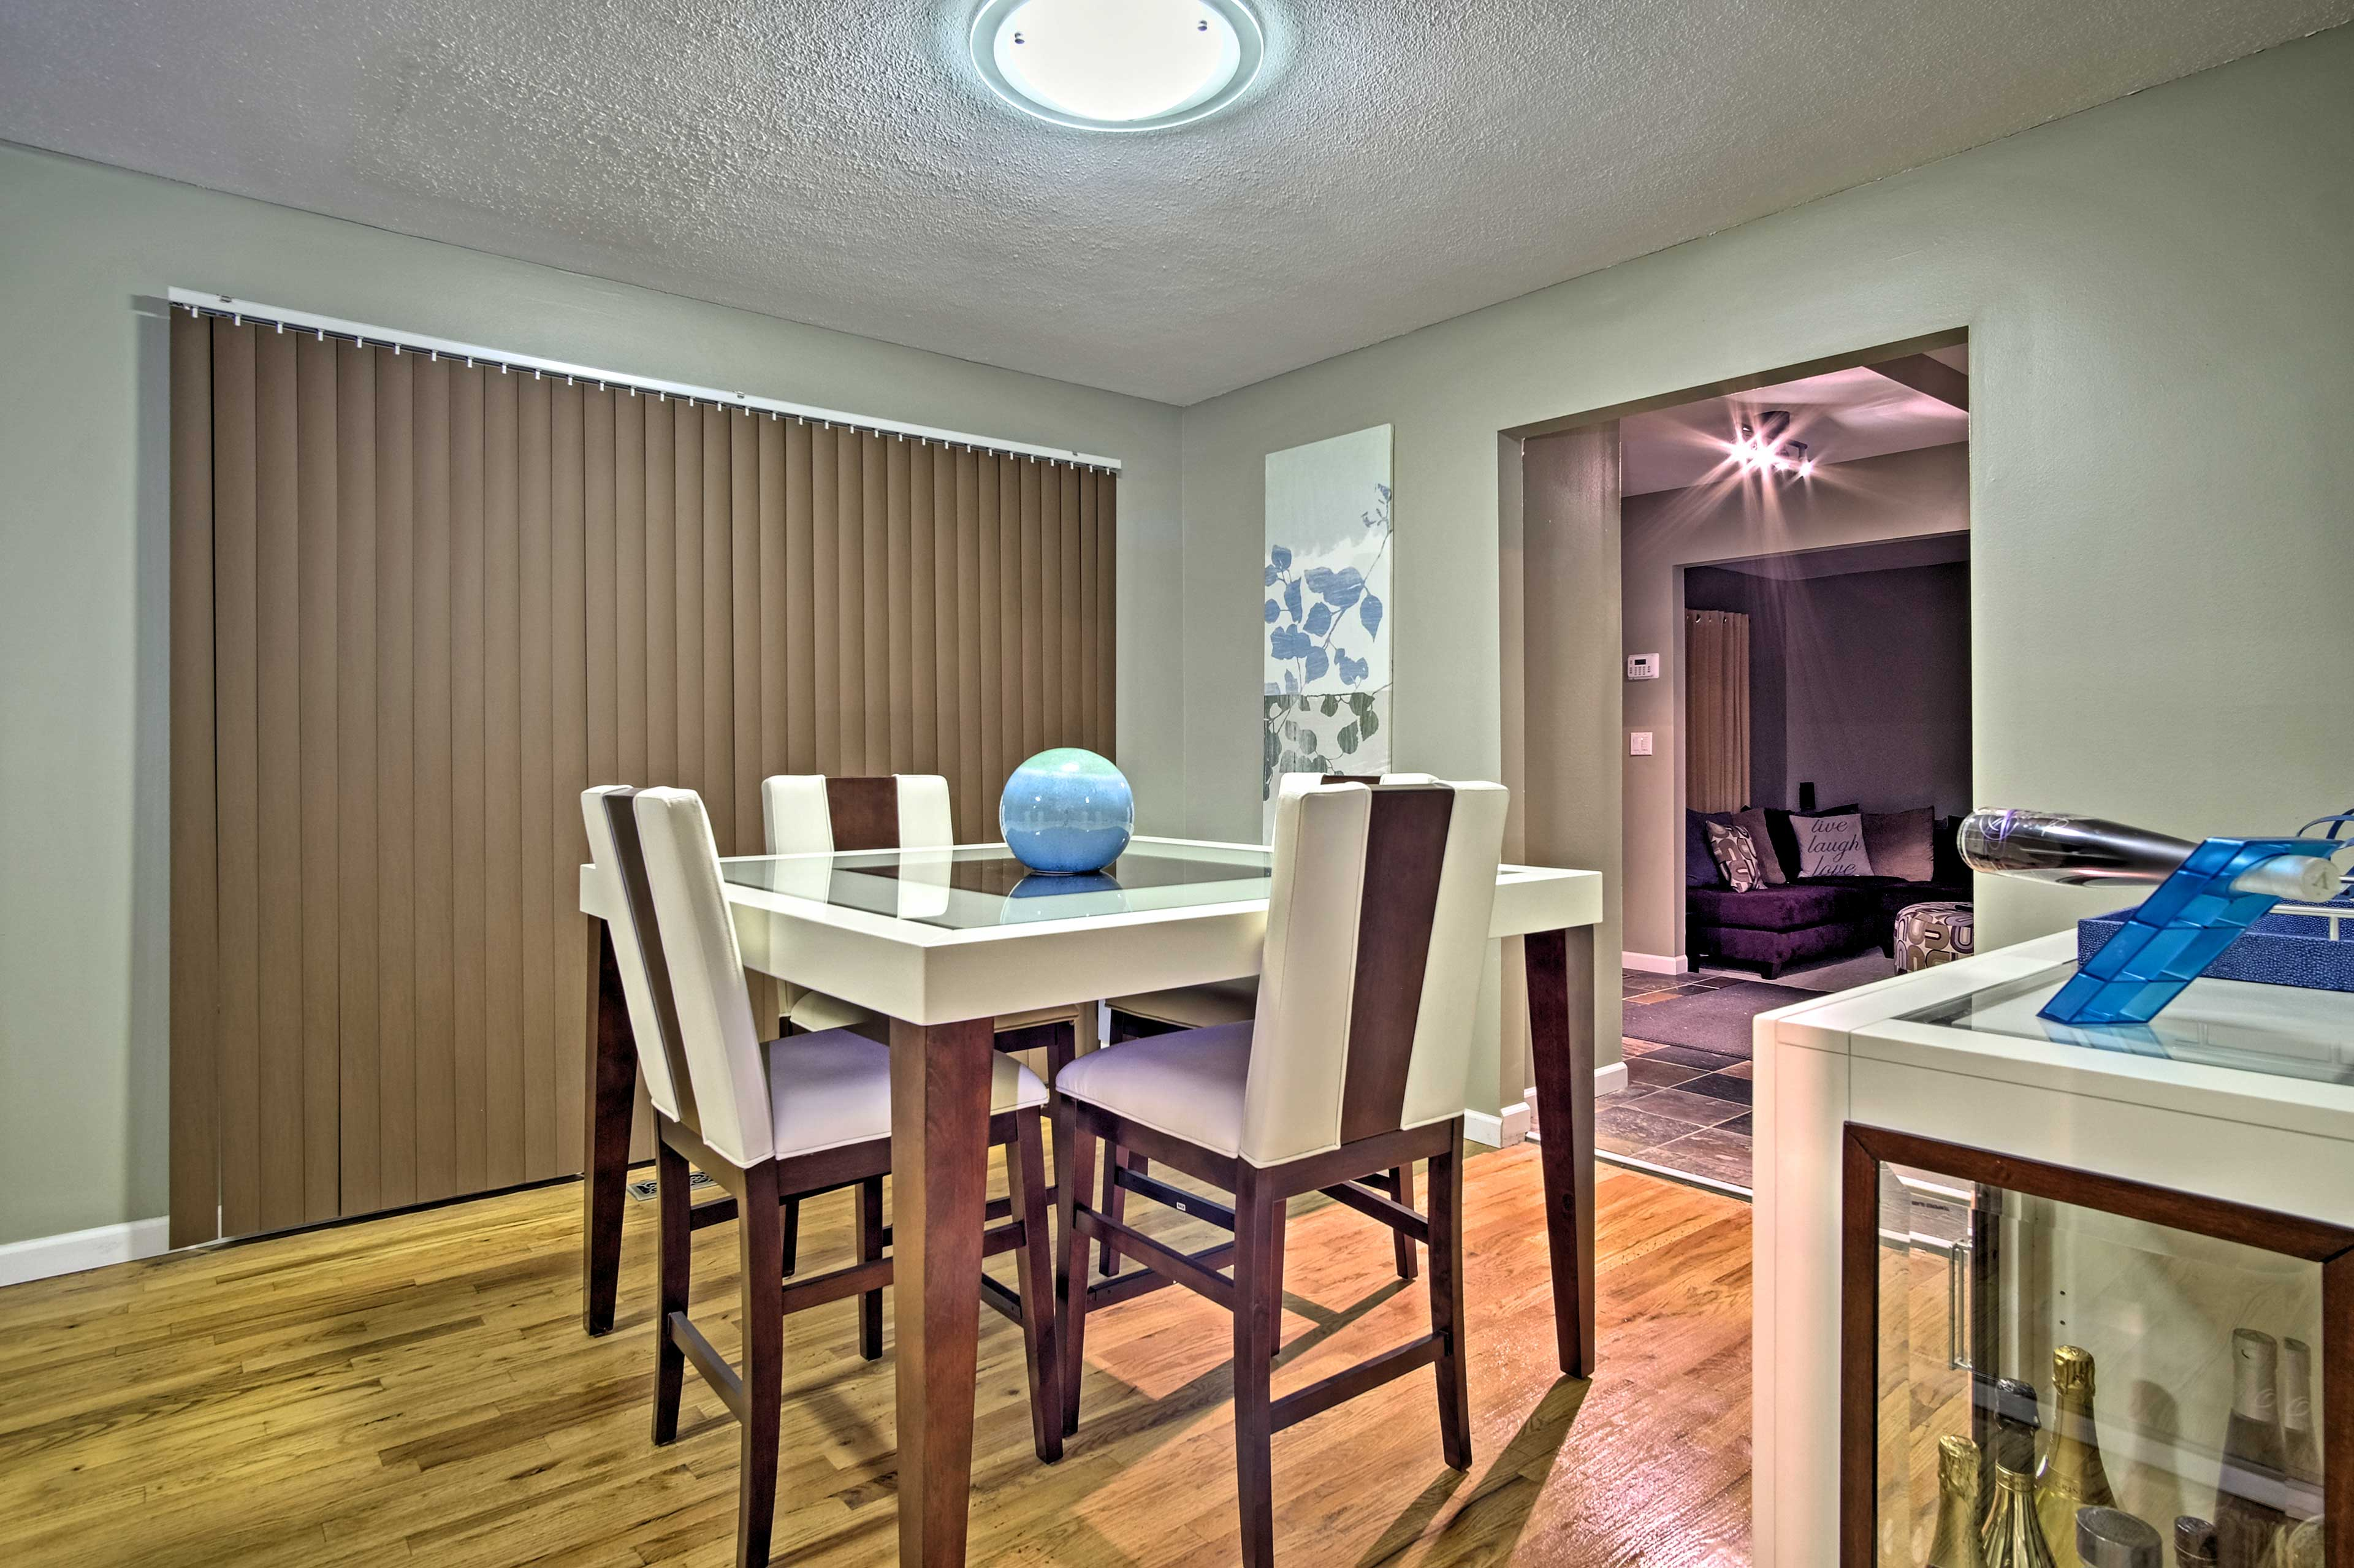 Settle down with your loved ones around this sleek 4-person dining table.